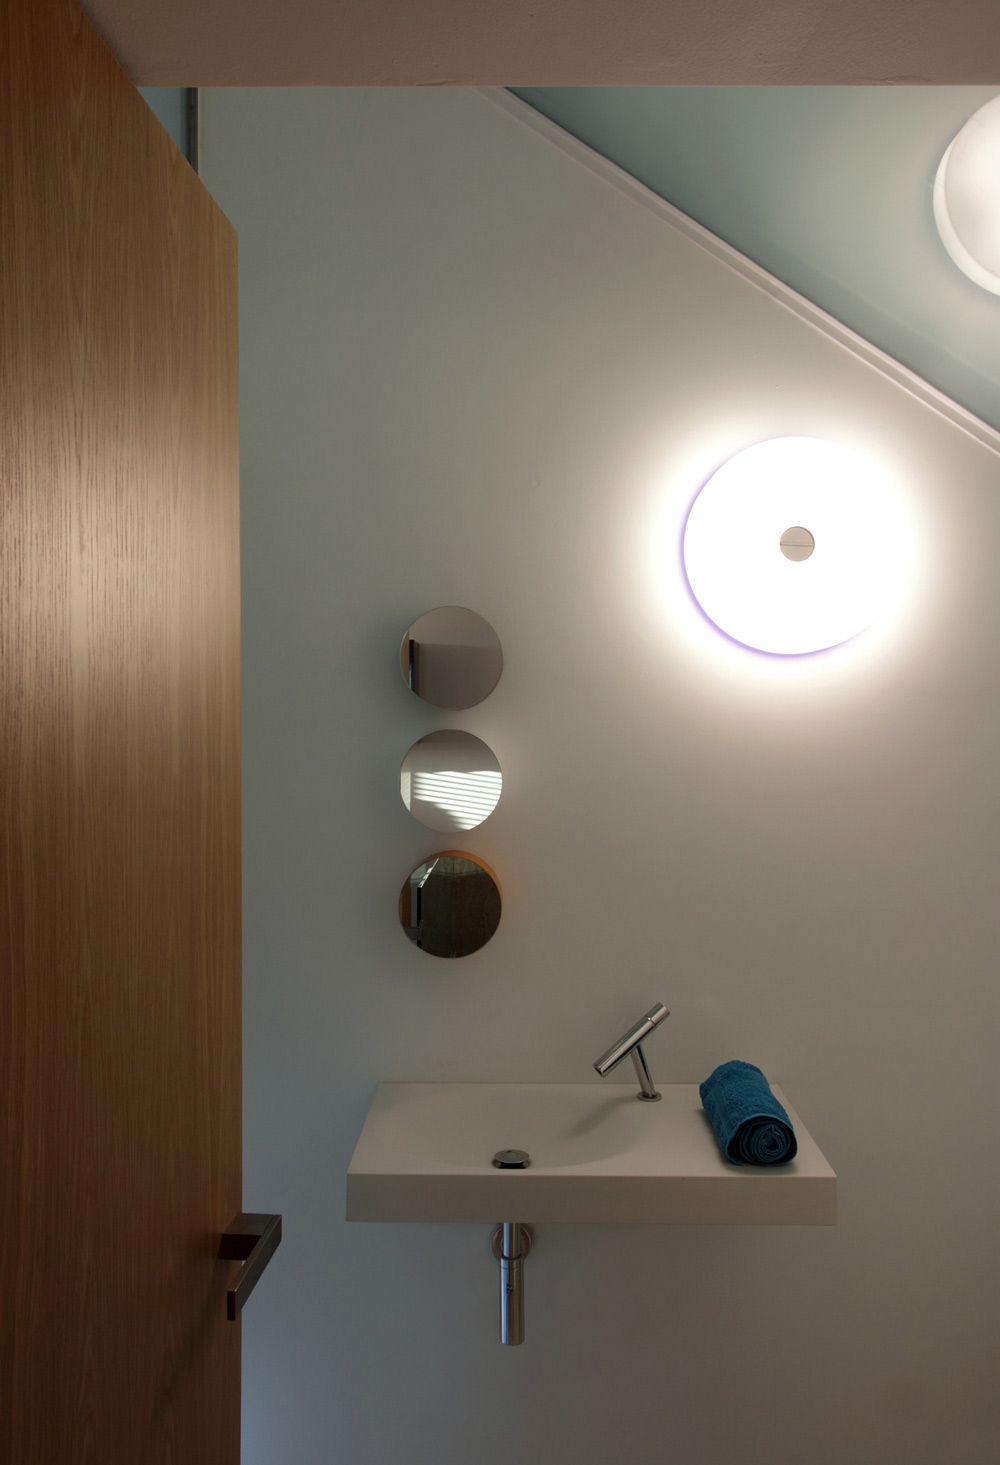 Luxury Buy ASTRO Niimi Wall Mirror LED Bathroom Light Online At Johnlewiscom